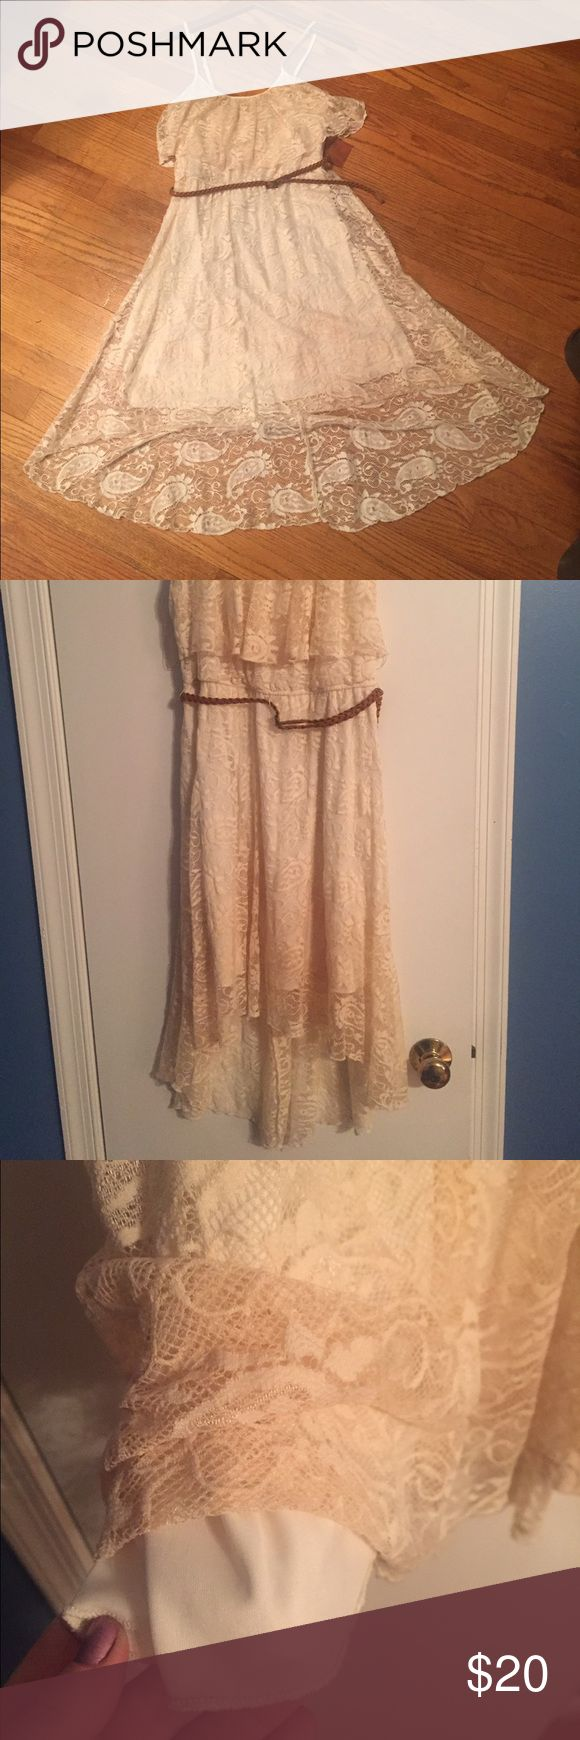 Cream Lace High Low Dress Cream colored high low lace dress with slip and brown braided leather belt. Worn twice, no stains, in great condition! Great with cow girl boots or out at a concert! Lily Rose Dresses High Low